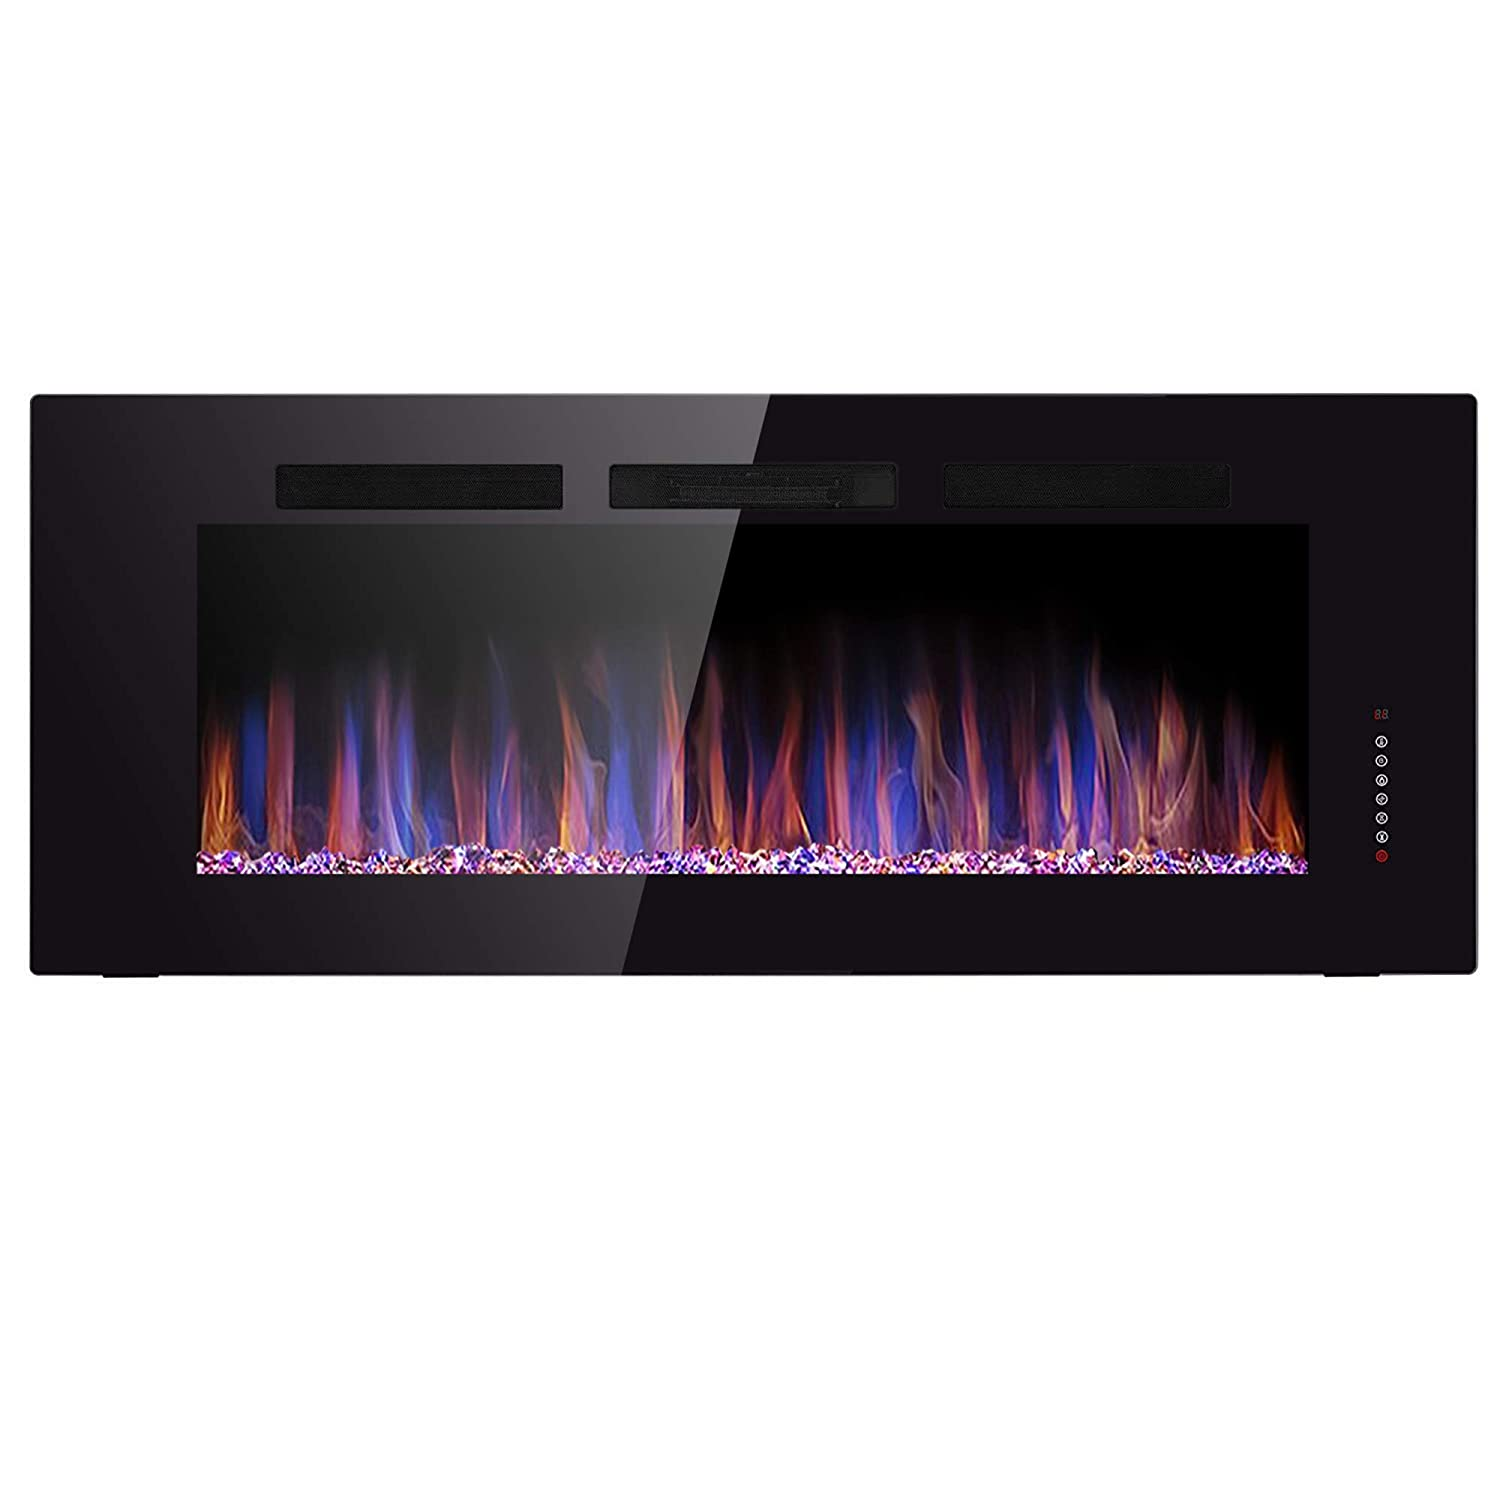 JAMFLY 60 Recessed Electric Fireplace in Wall Mounted Linear Fireplace Insert 750 1500 W Heater Touch Screen Remote Control, Adjustable Flame Speed with Crystal Hearth